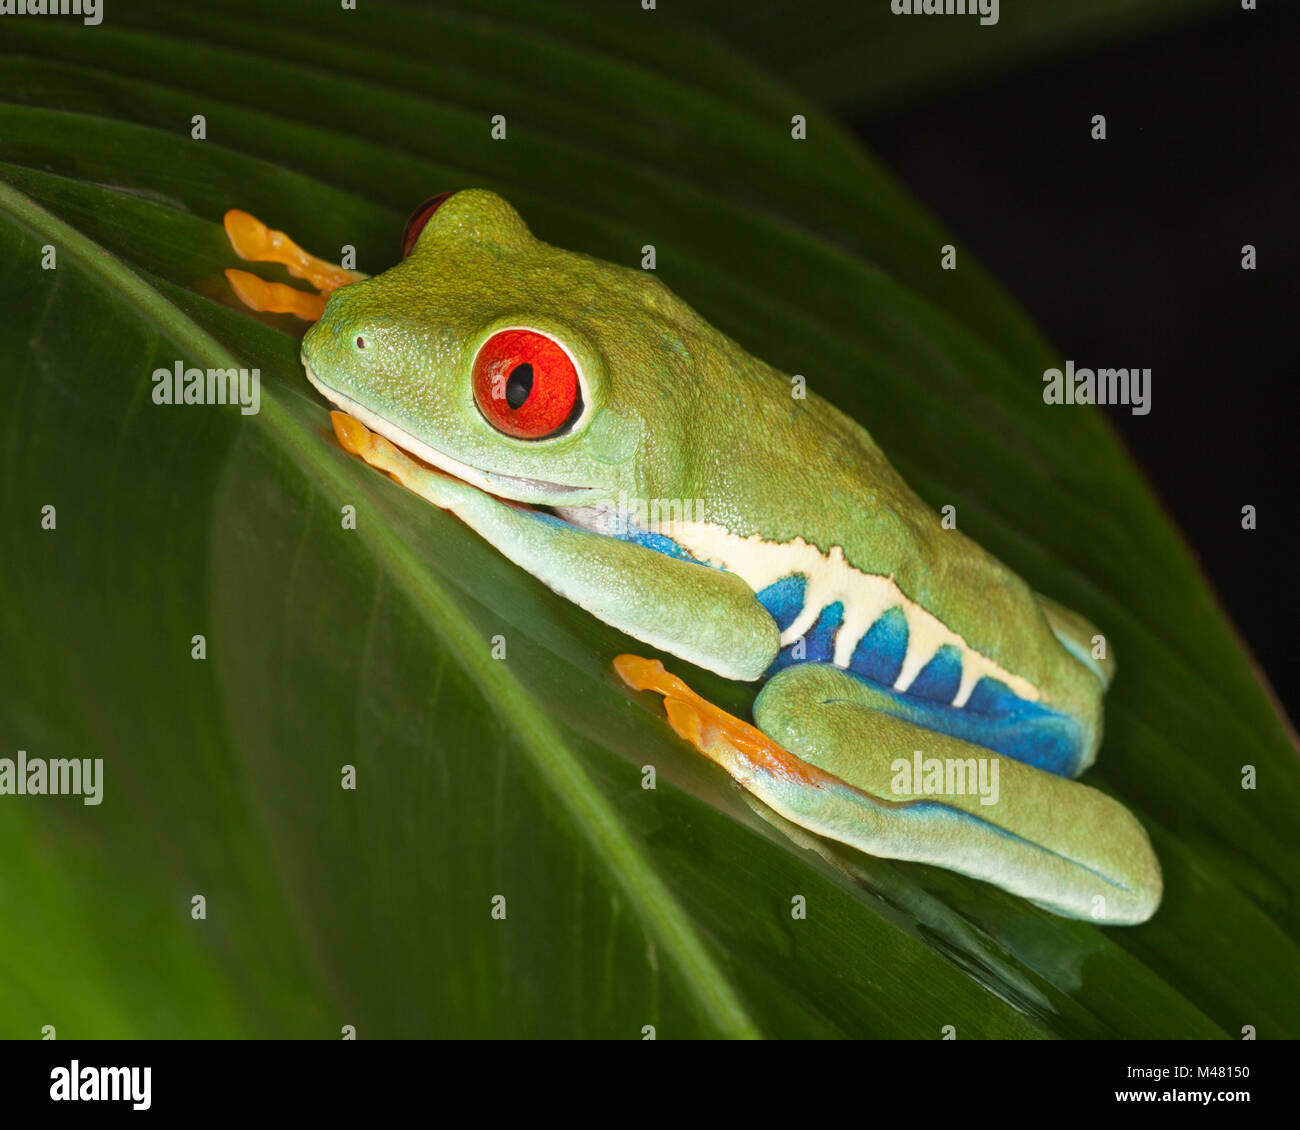 Red-eyed Tree frog (Agalychnis callidryas)on rainforest leaf, also known as Red-eye Leaf Frog Stock Photo